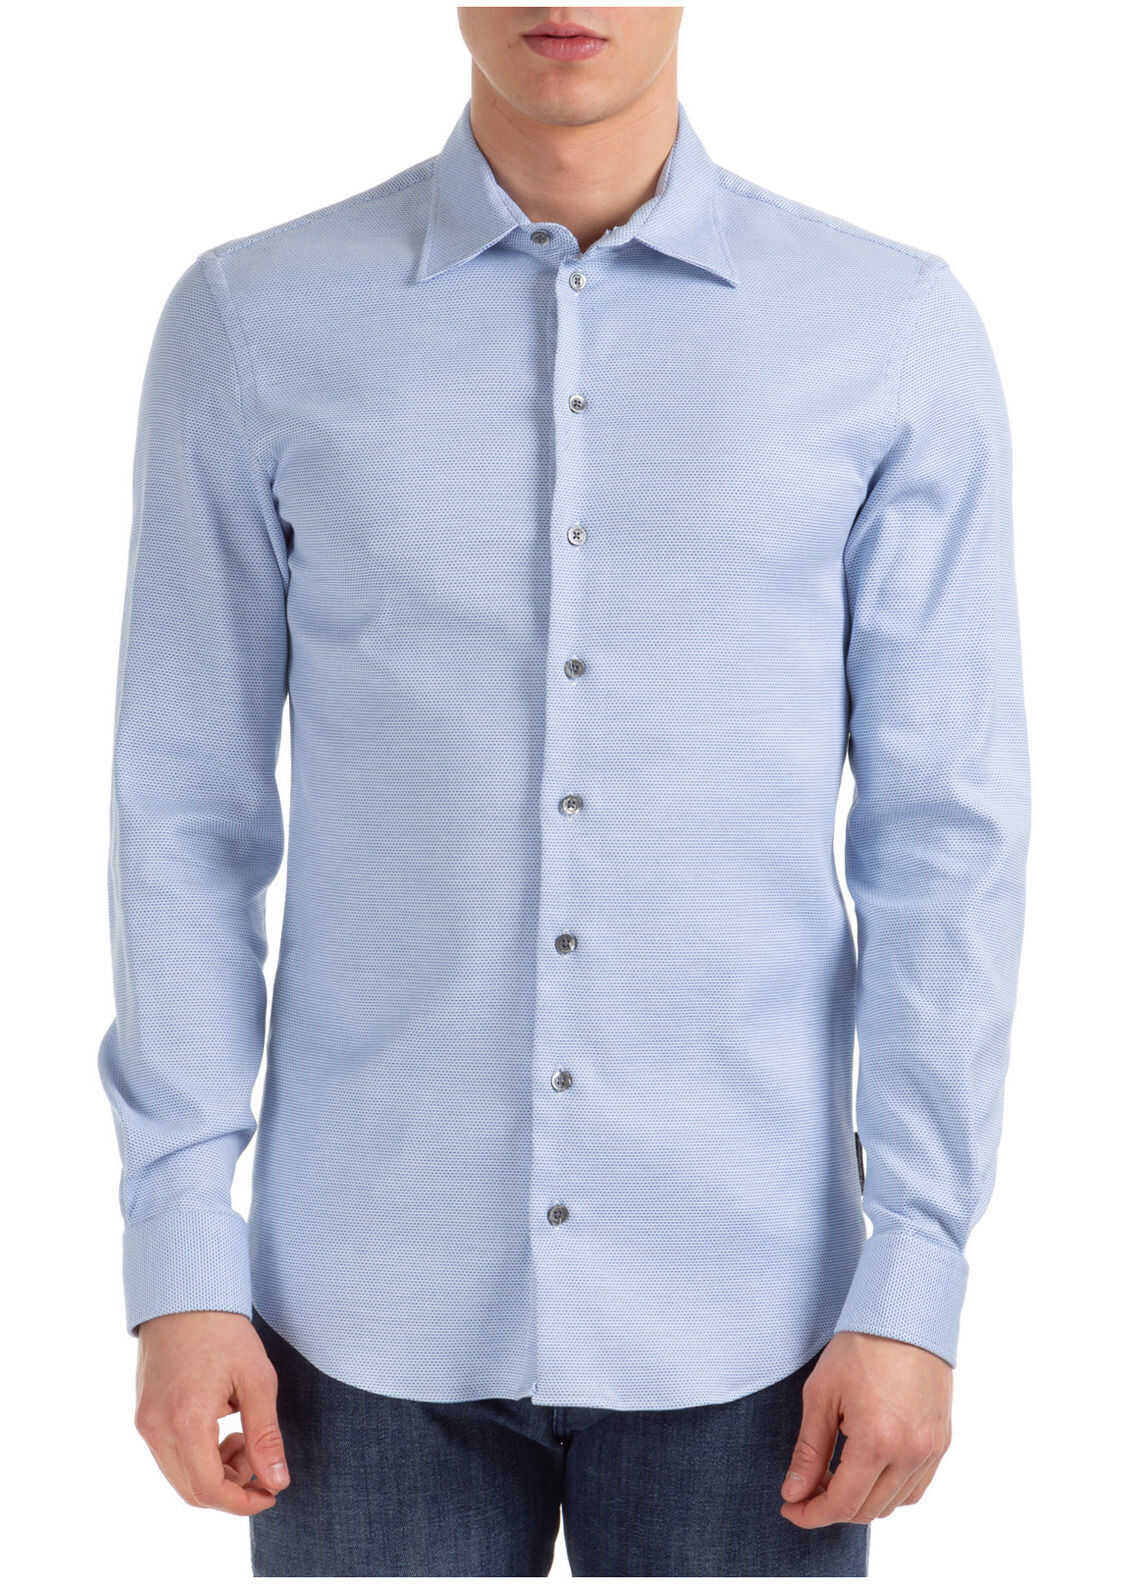 Emporio Armani Dress Shirt Light blue